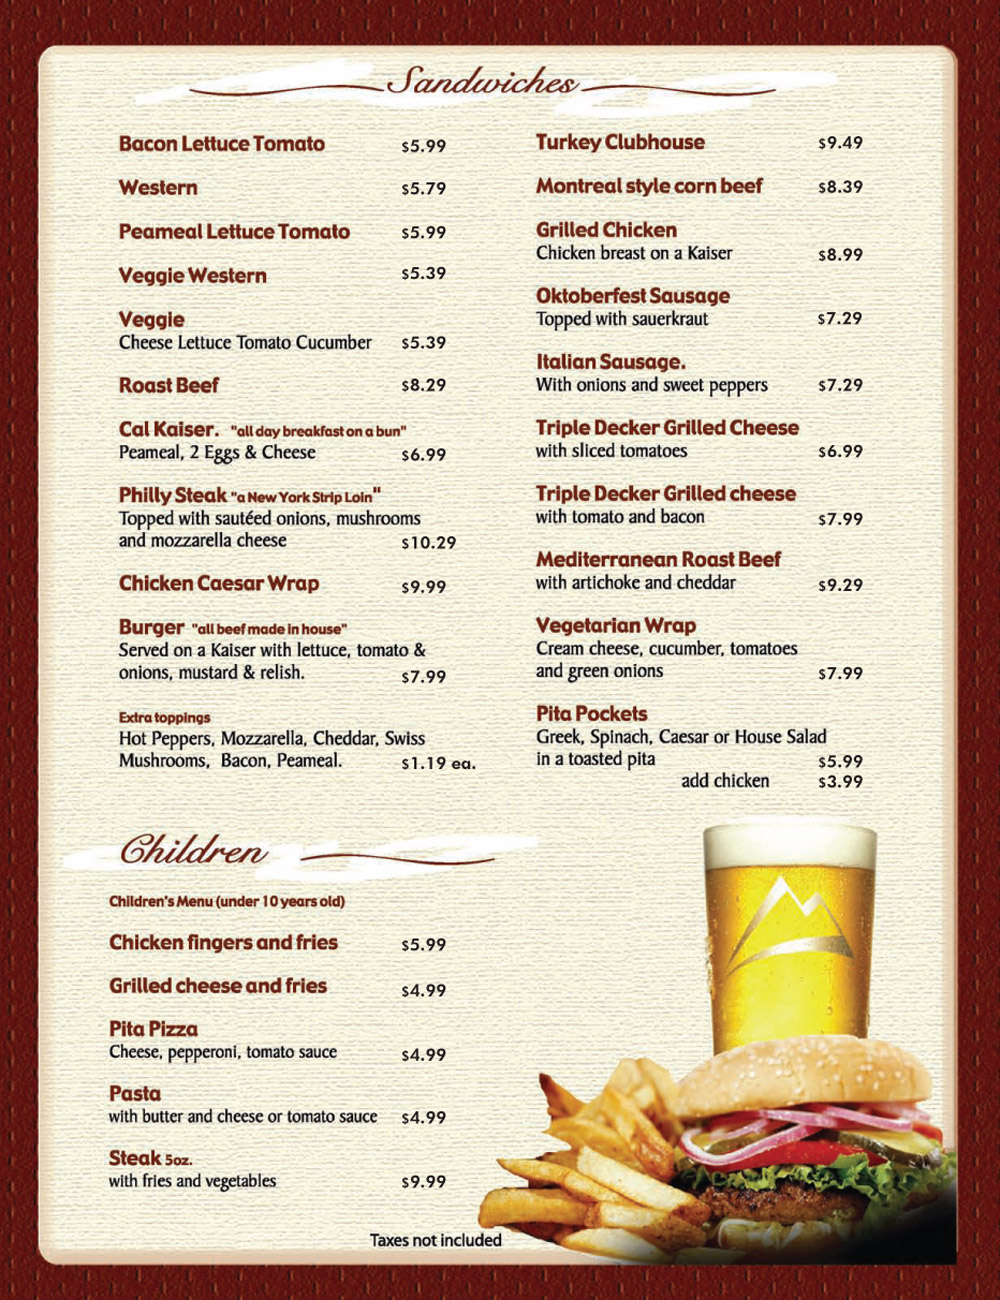 12 Free Menu Templates For Word | Survey Template Words Printable - Menu Template Free Printable Word